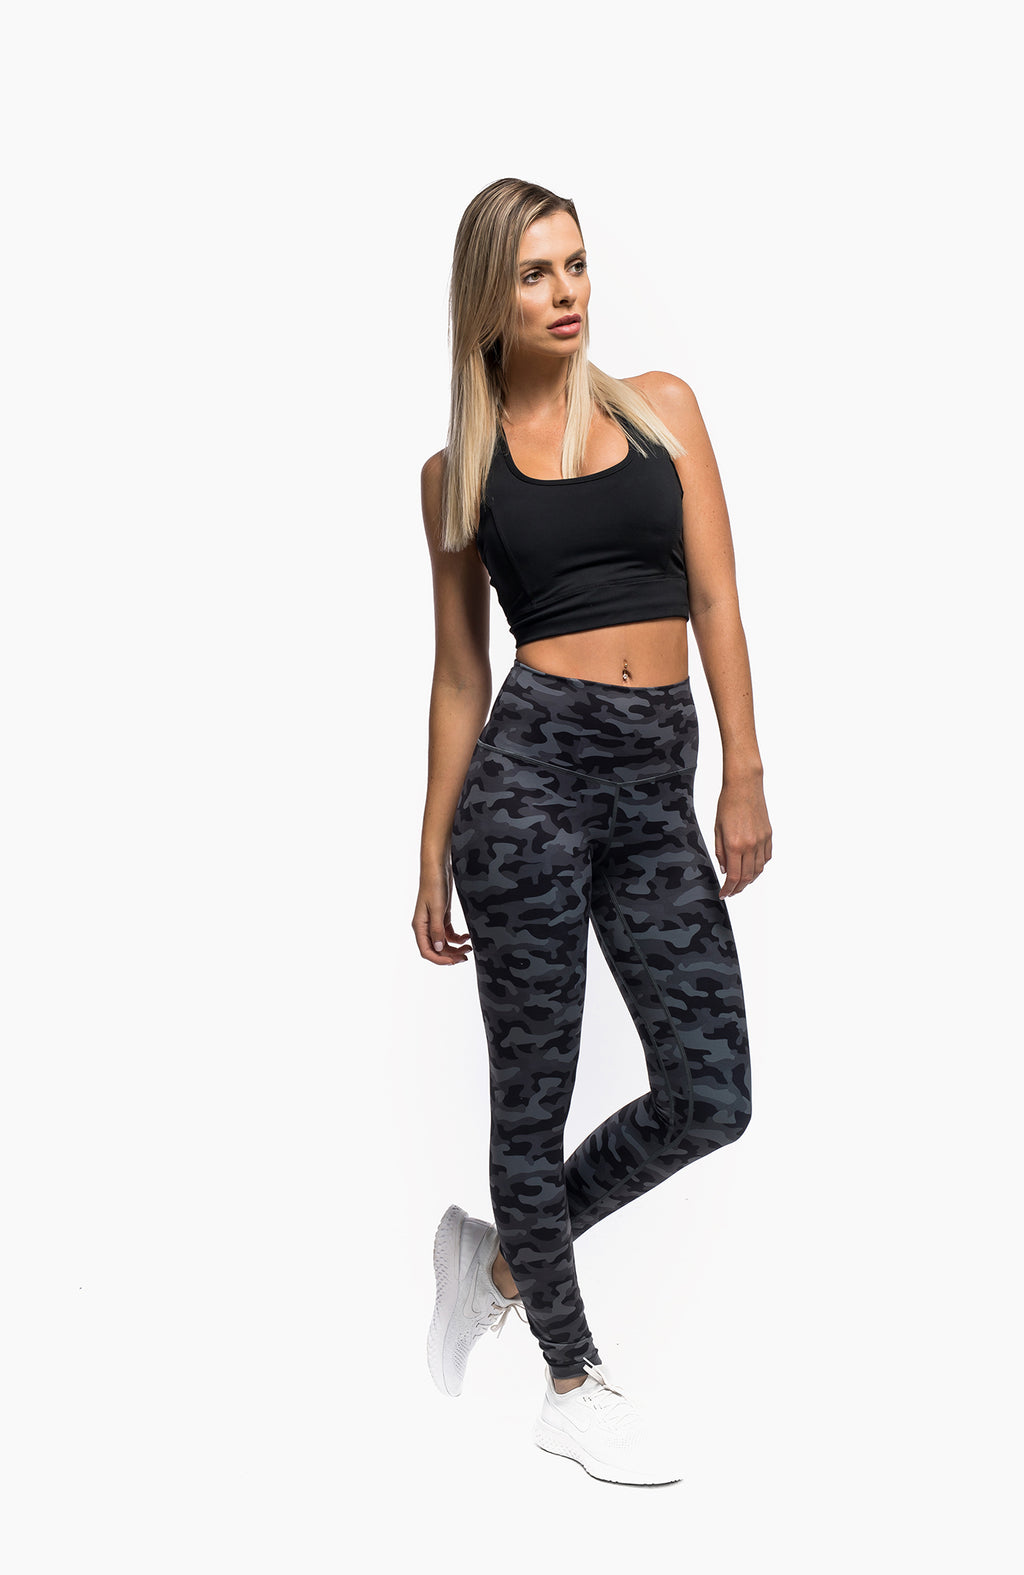 PURSUE LEGGINGS - CAMO BLACK - hustletics.com